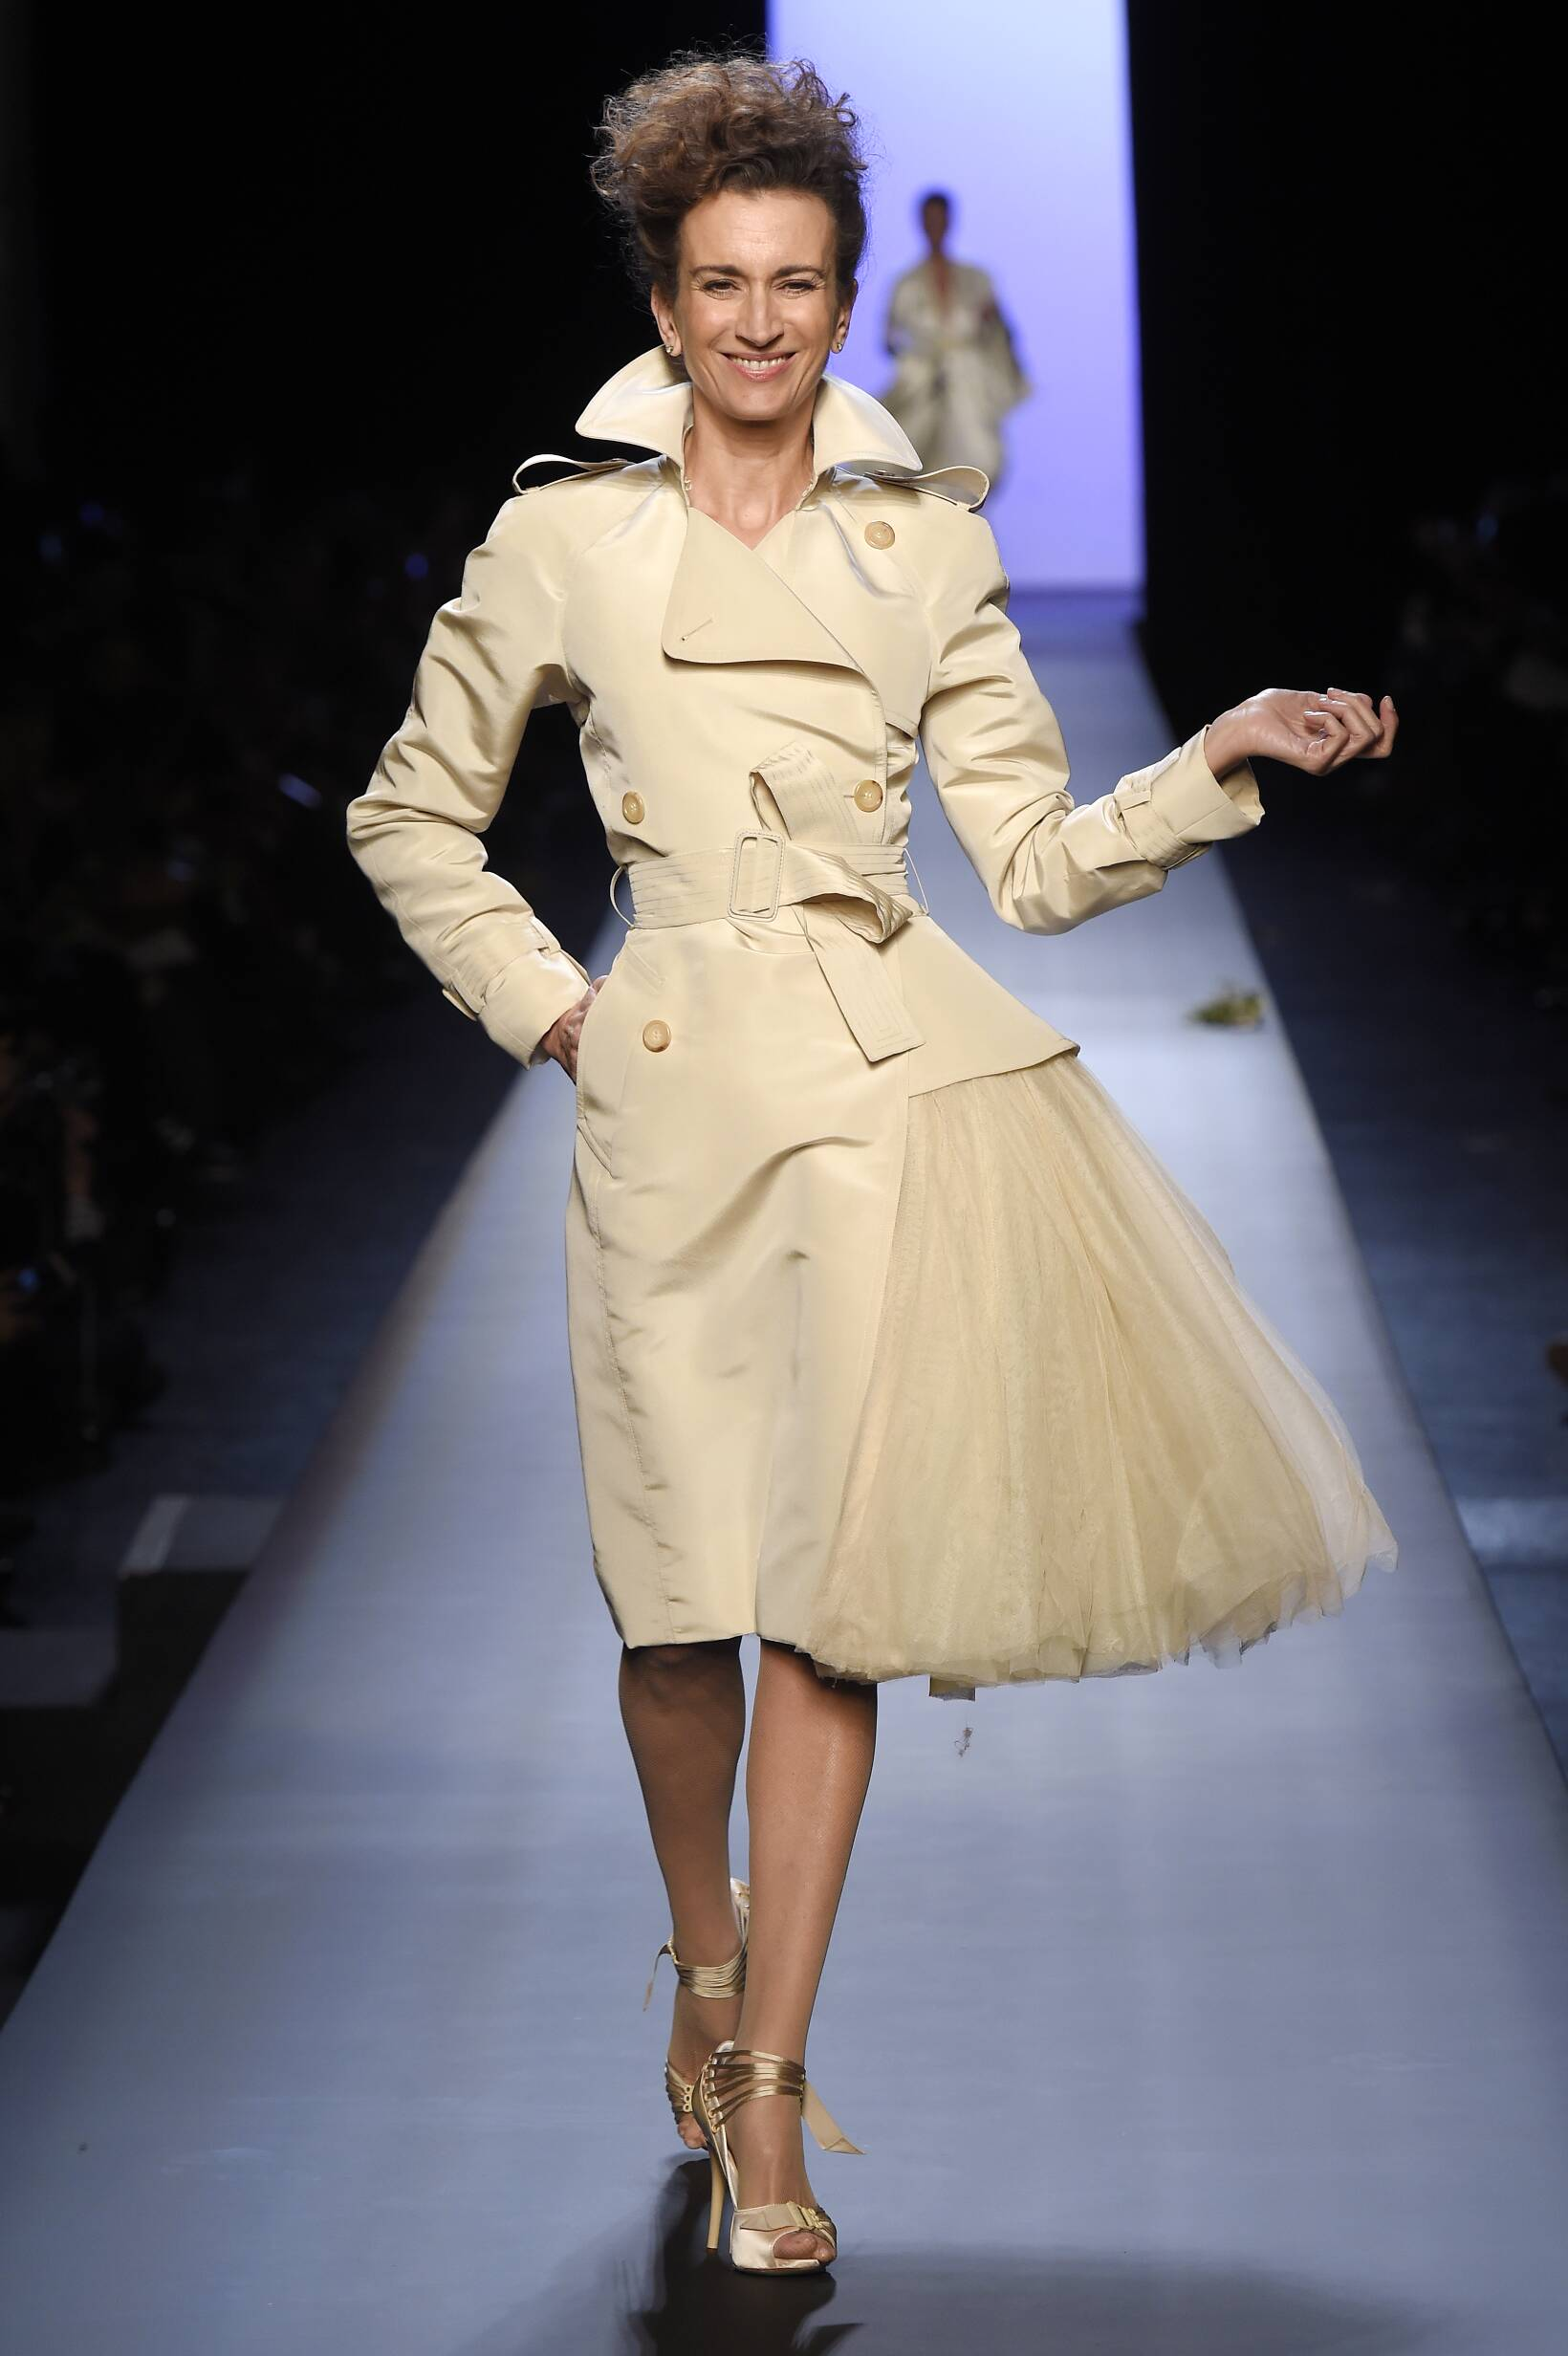 Spring Jean Paul Gaultier Haute Couture Collection Fashion Women Model